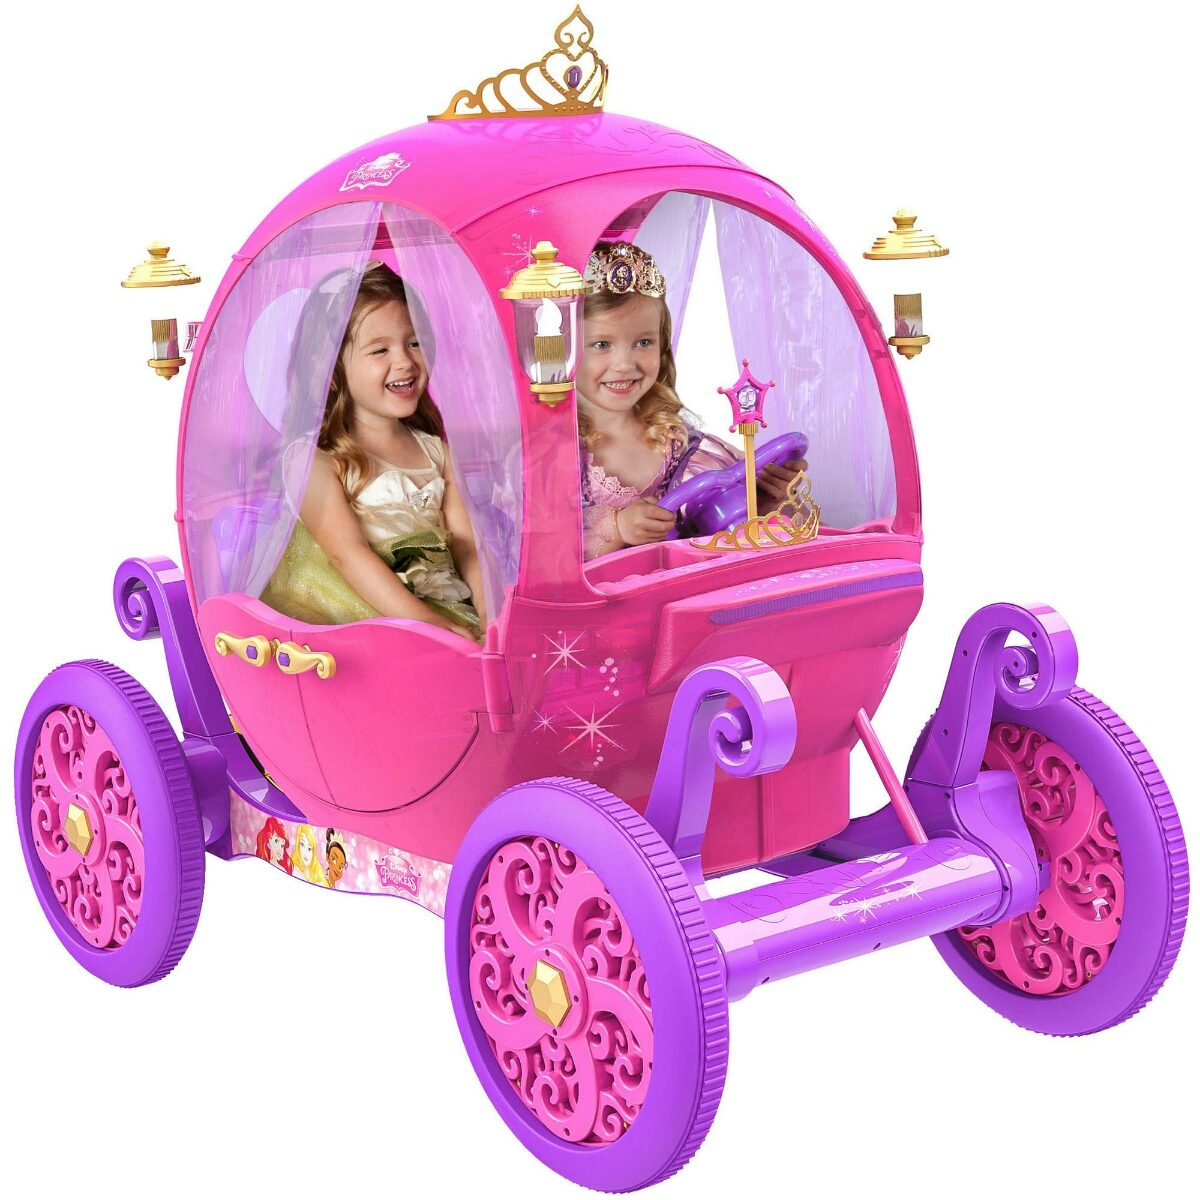 Carro Electrico Disney Princesas Carruaje 15 000 00 En